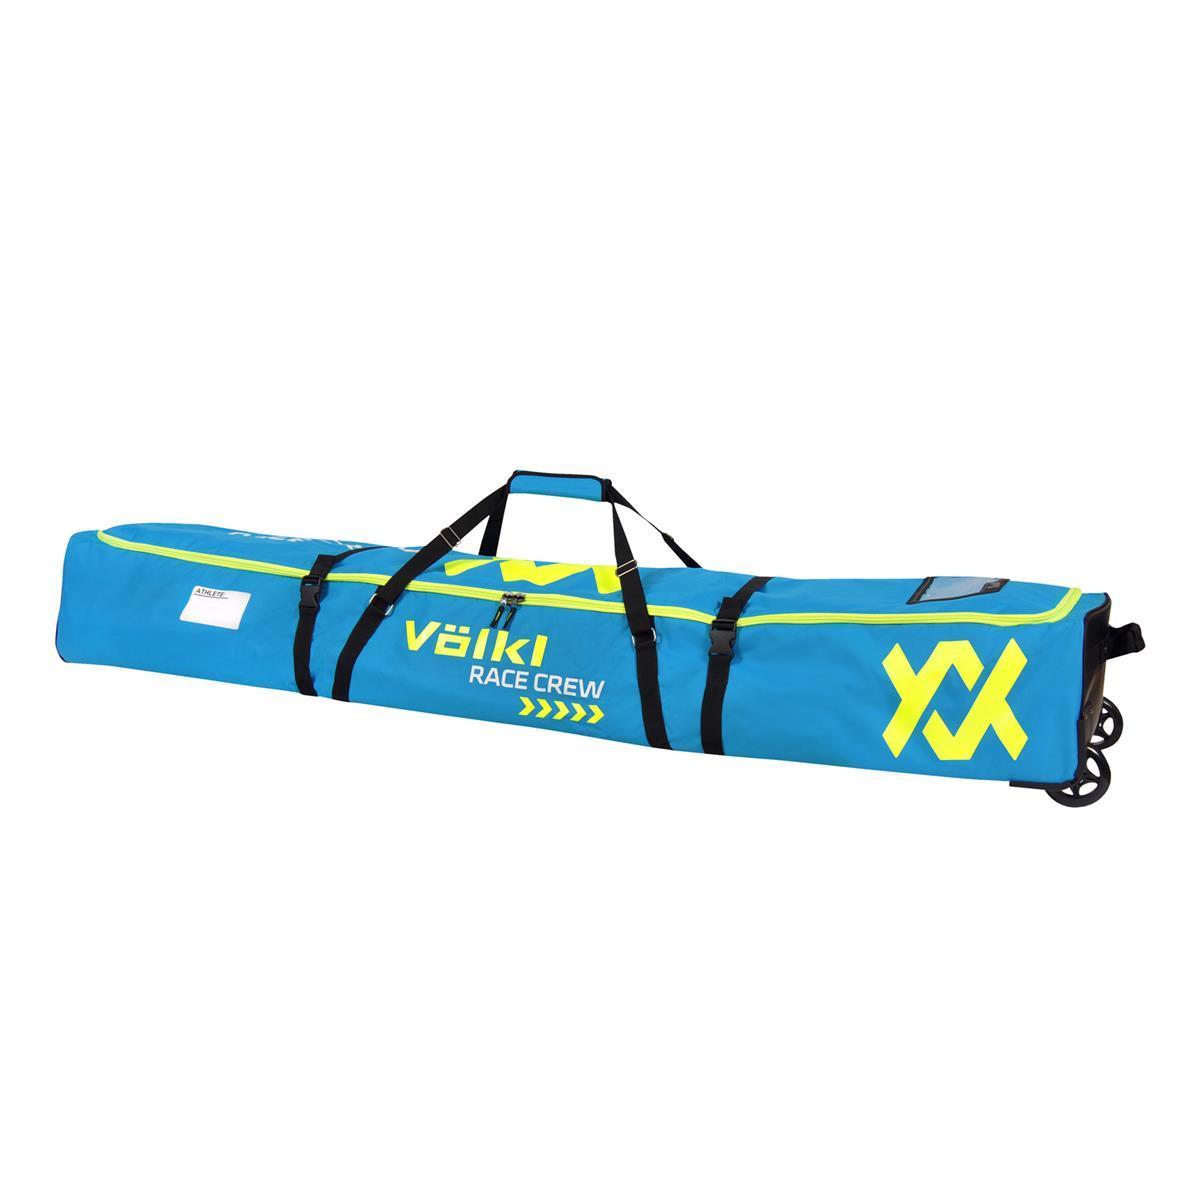 Völkl Race 6Pair Ski Wheel Bag